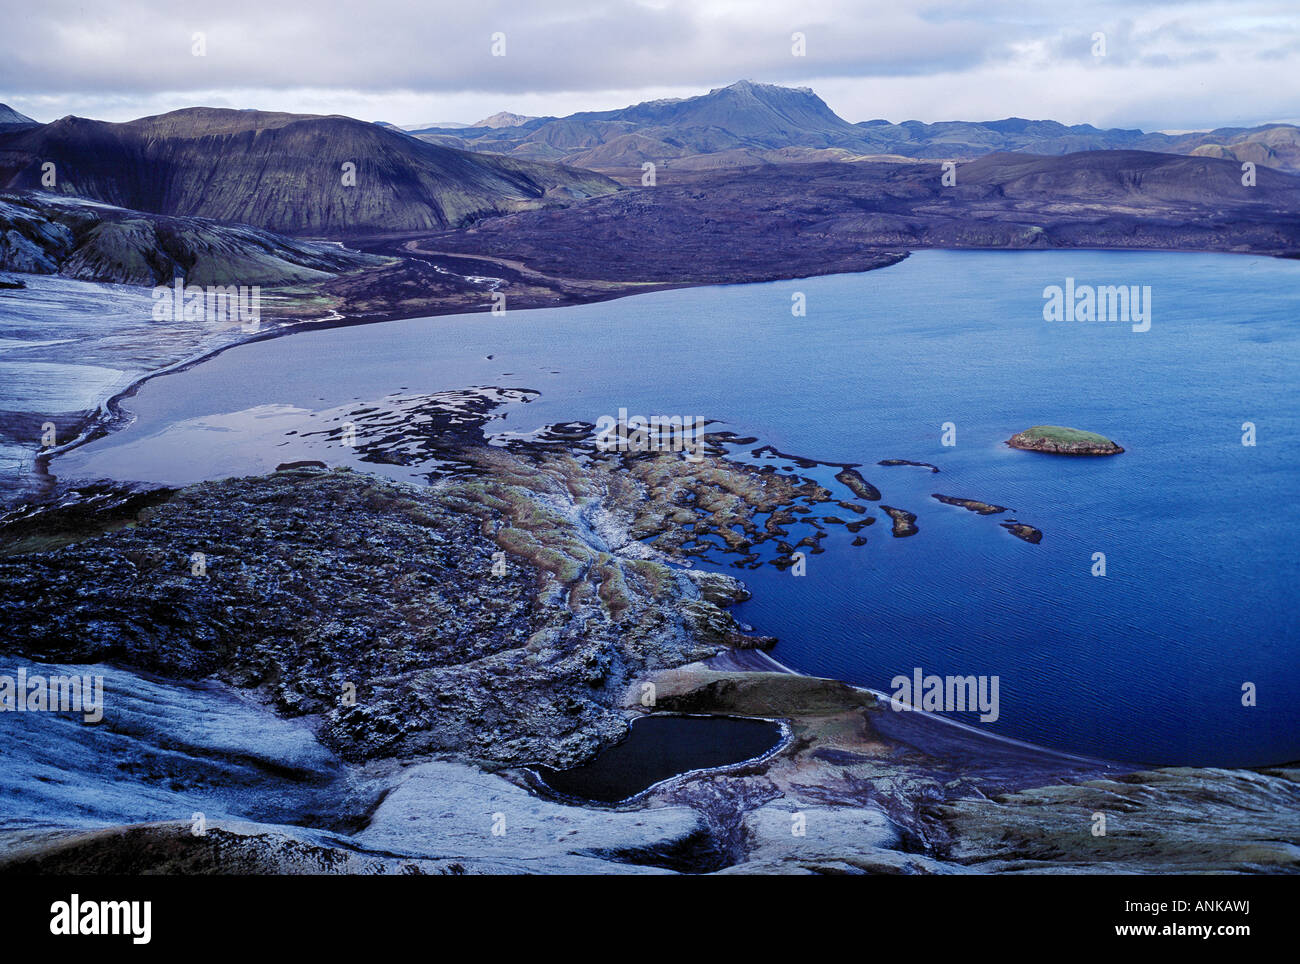 Aerial photo of Frostastadarvatn Iceland - Stock Image